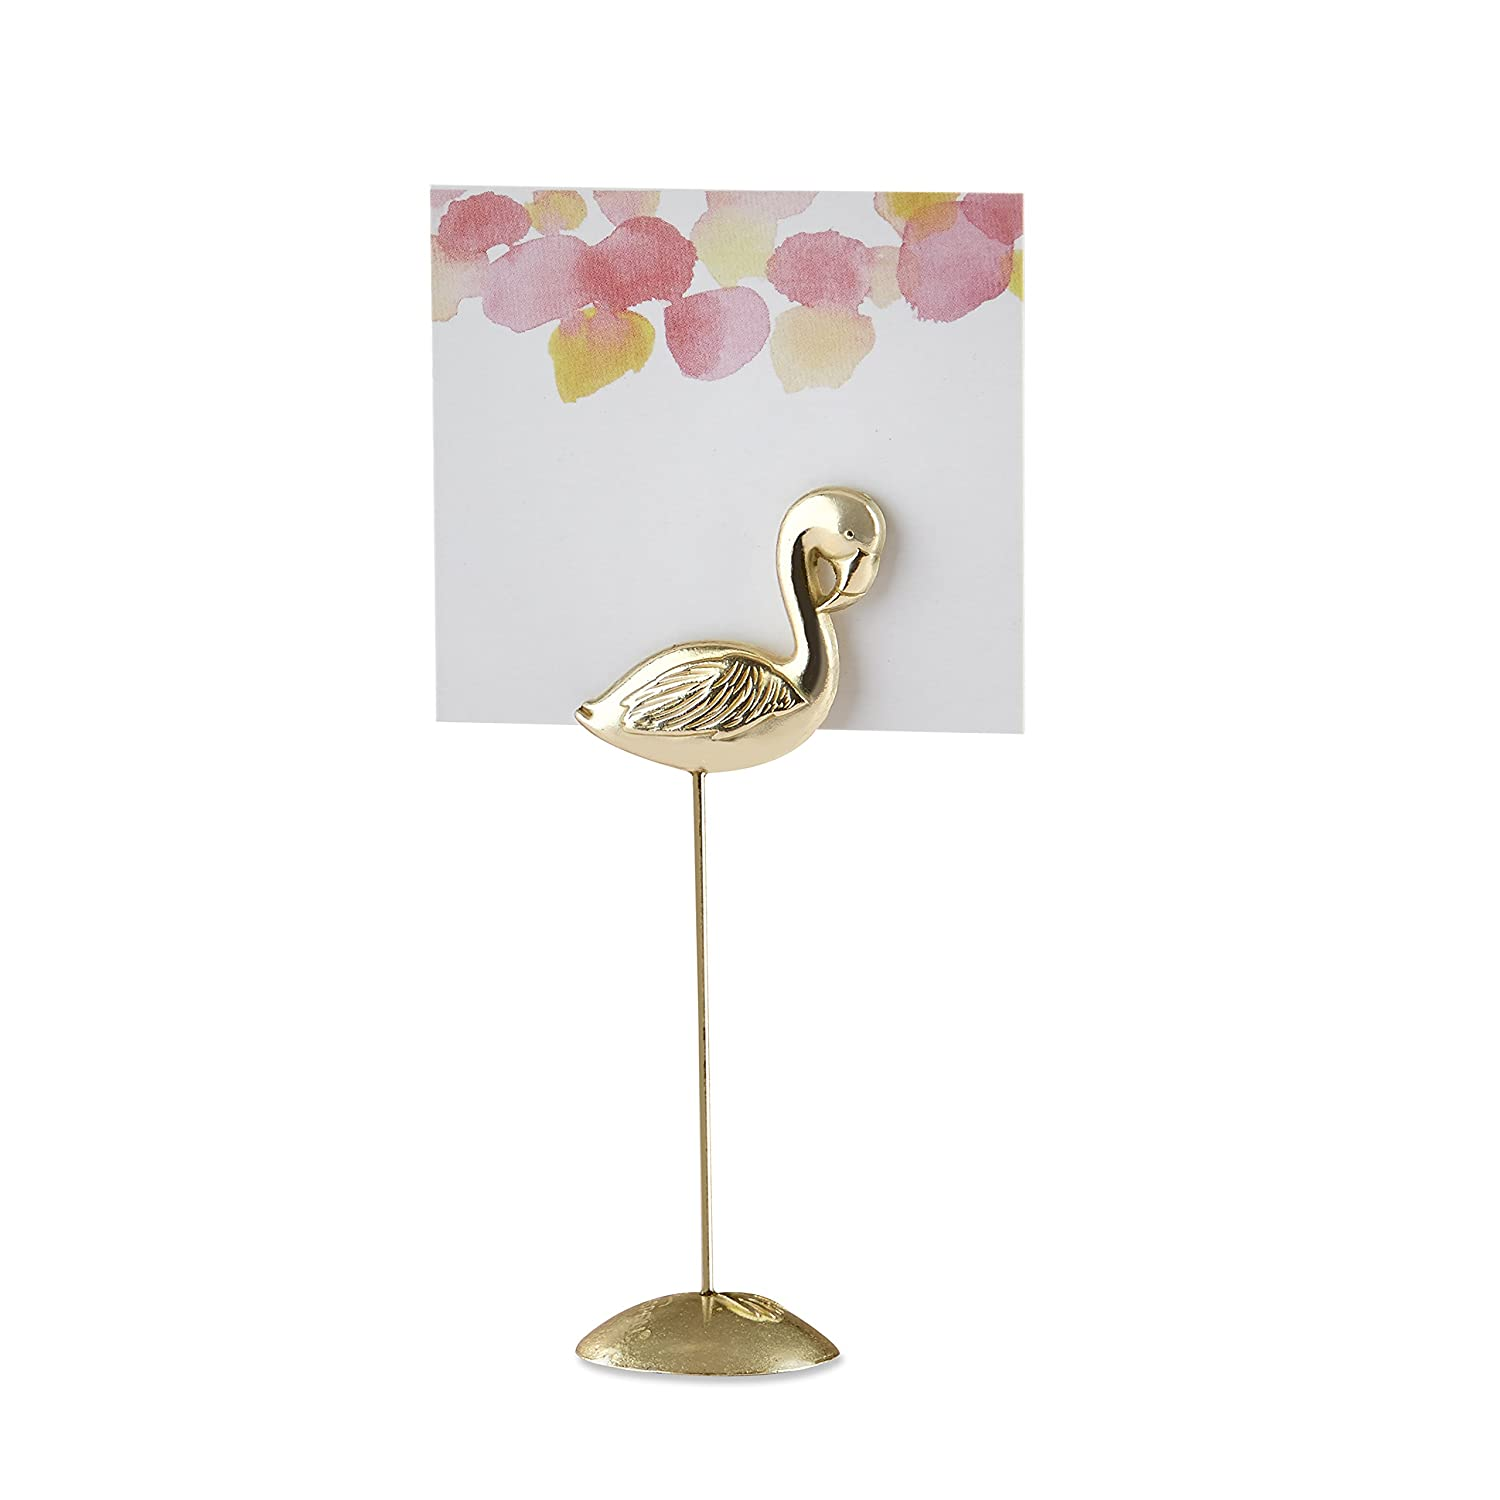 Set of 6 Kate Aspen 11309GD Antique Gold Flamingo Holder /& Pink Watercolor Place Card Holders One Size White and Pink